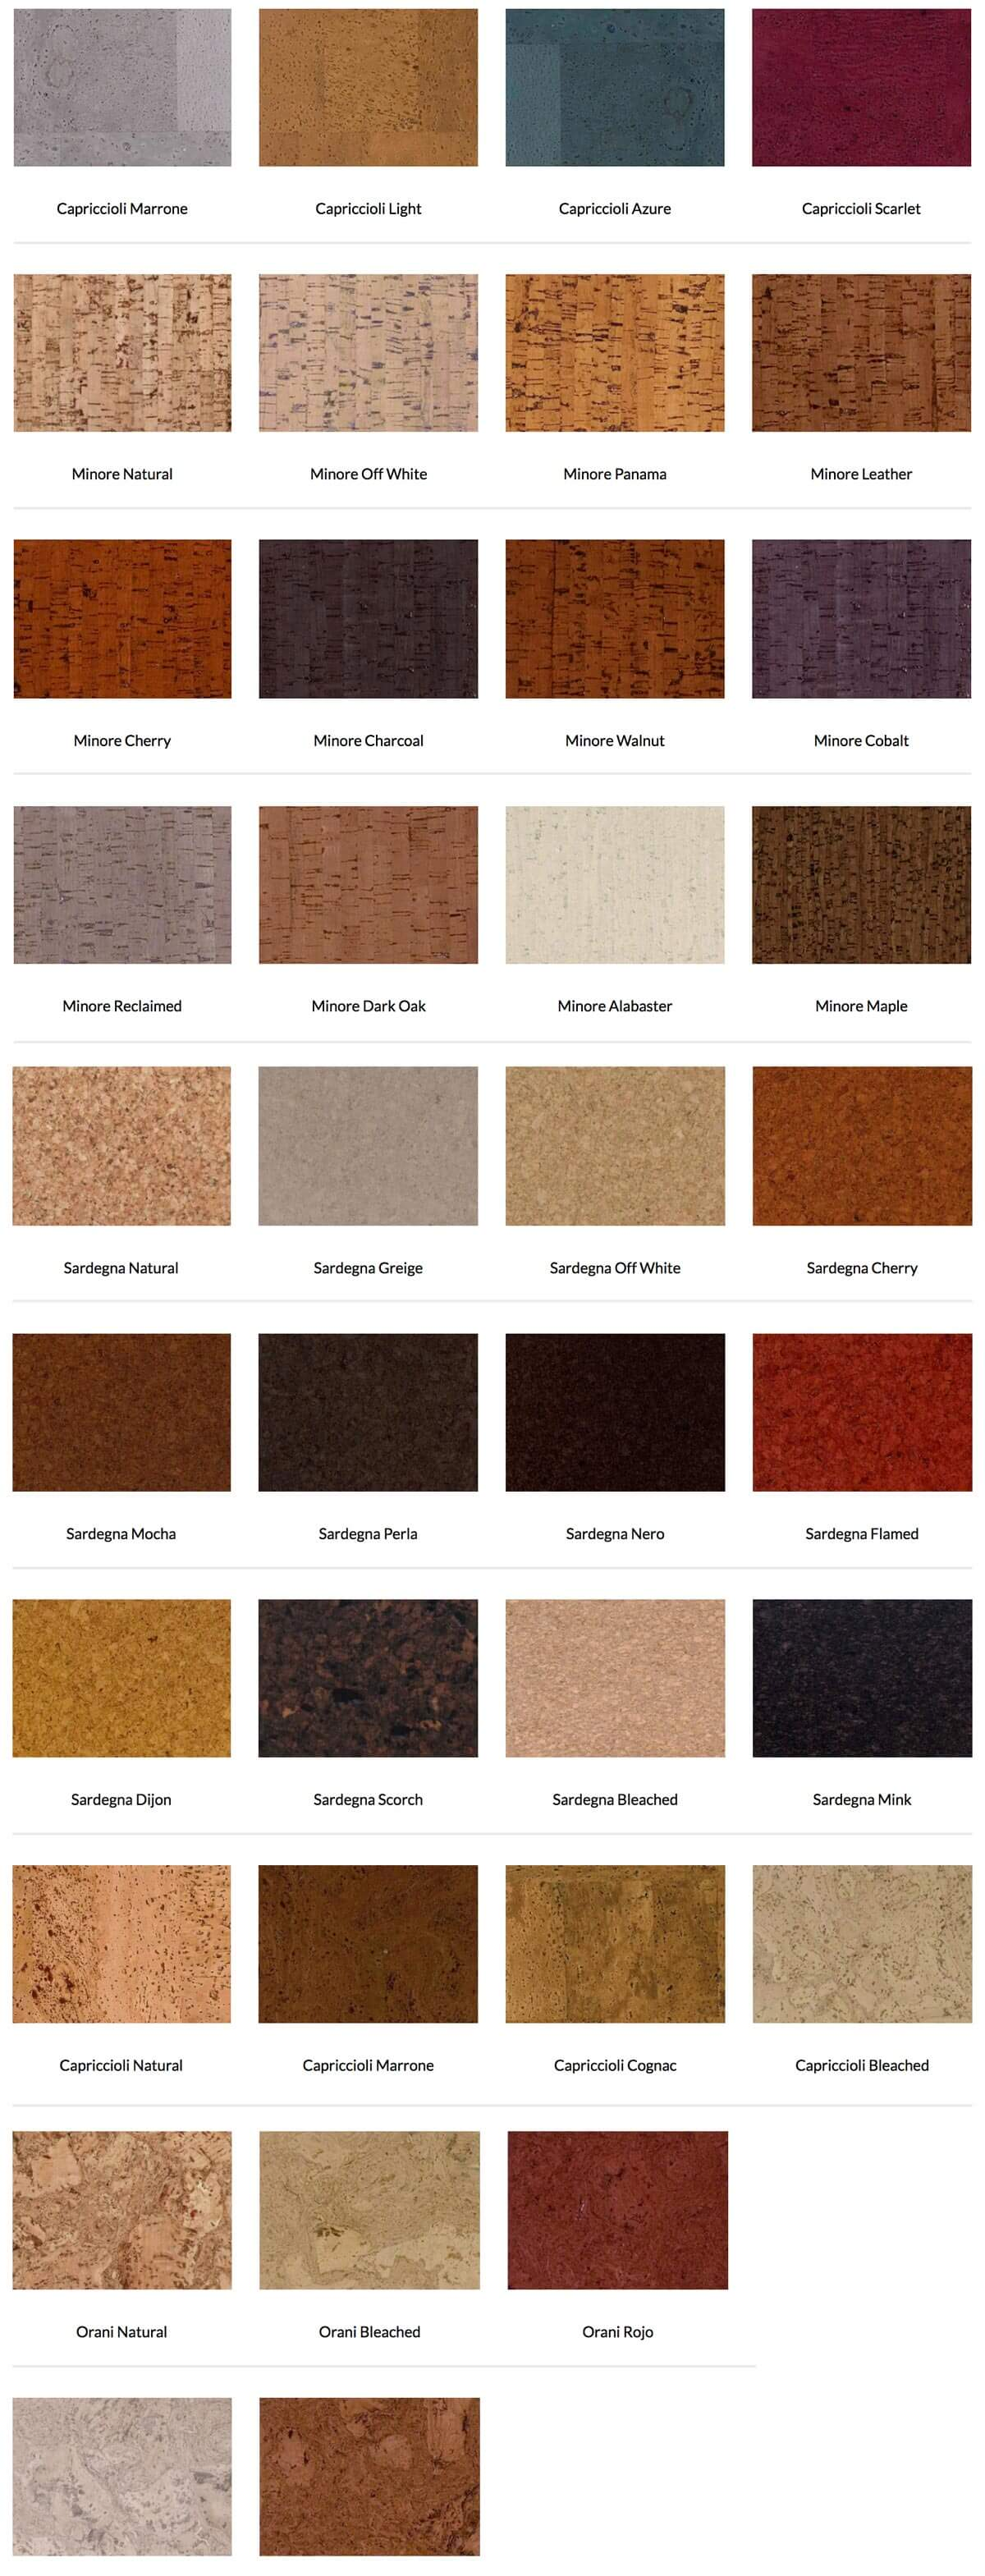 Classic Cork Tile color options